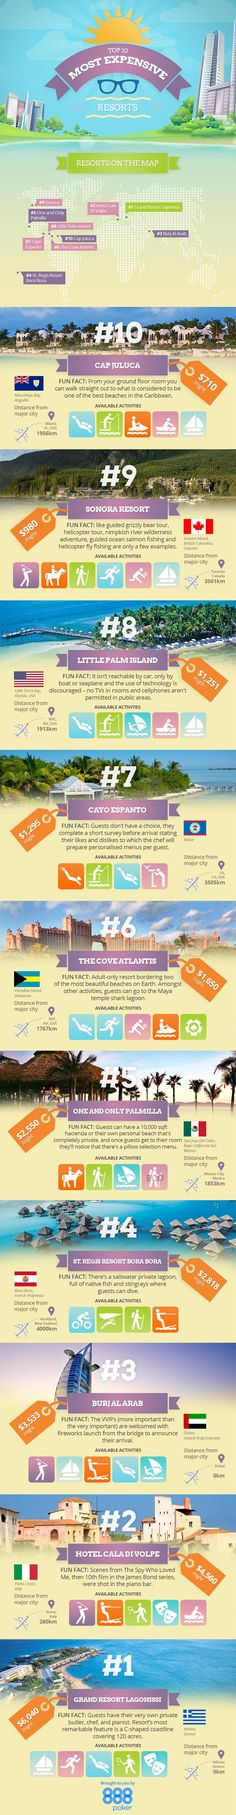 The Top 10 Most Expensive Resorts [Infographic]